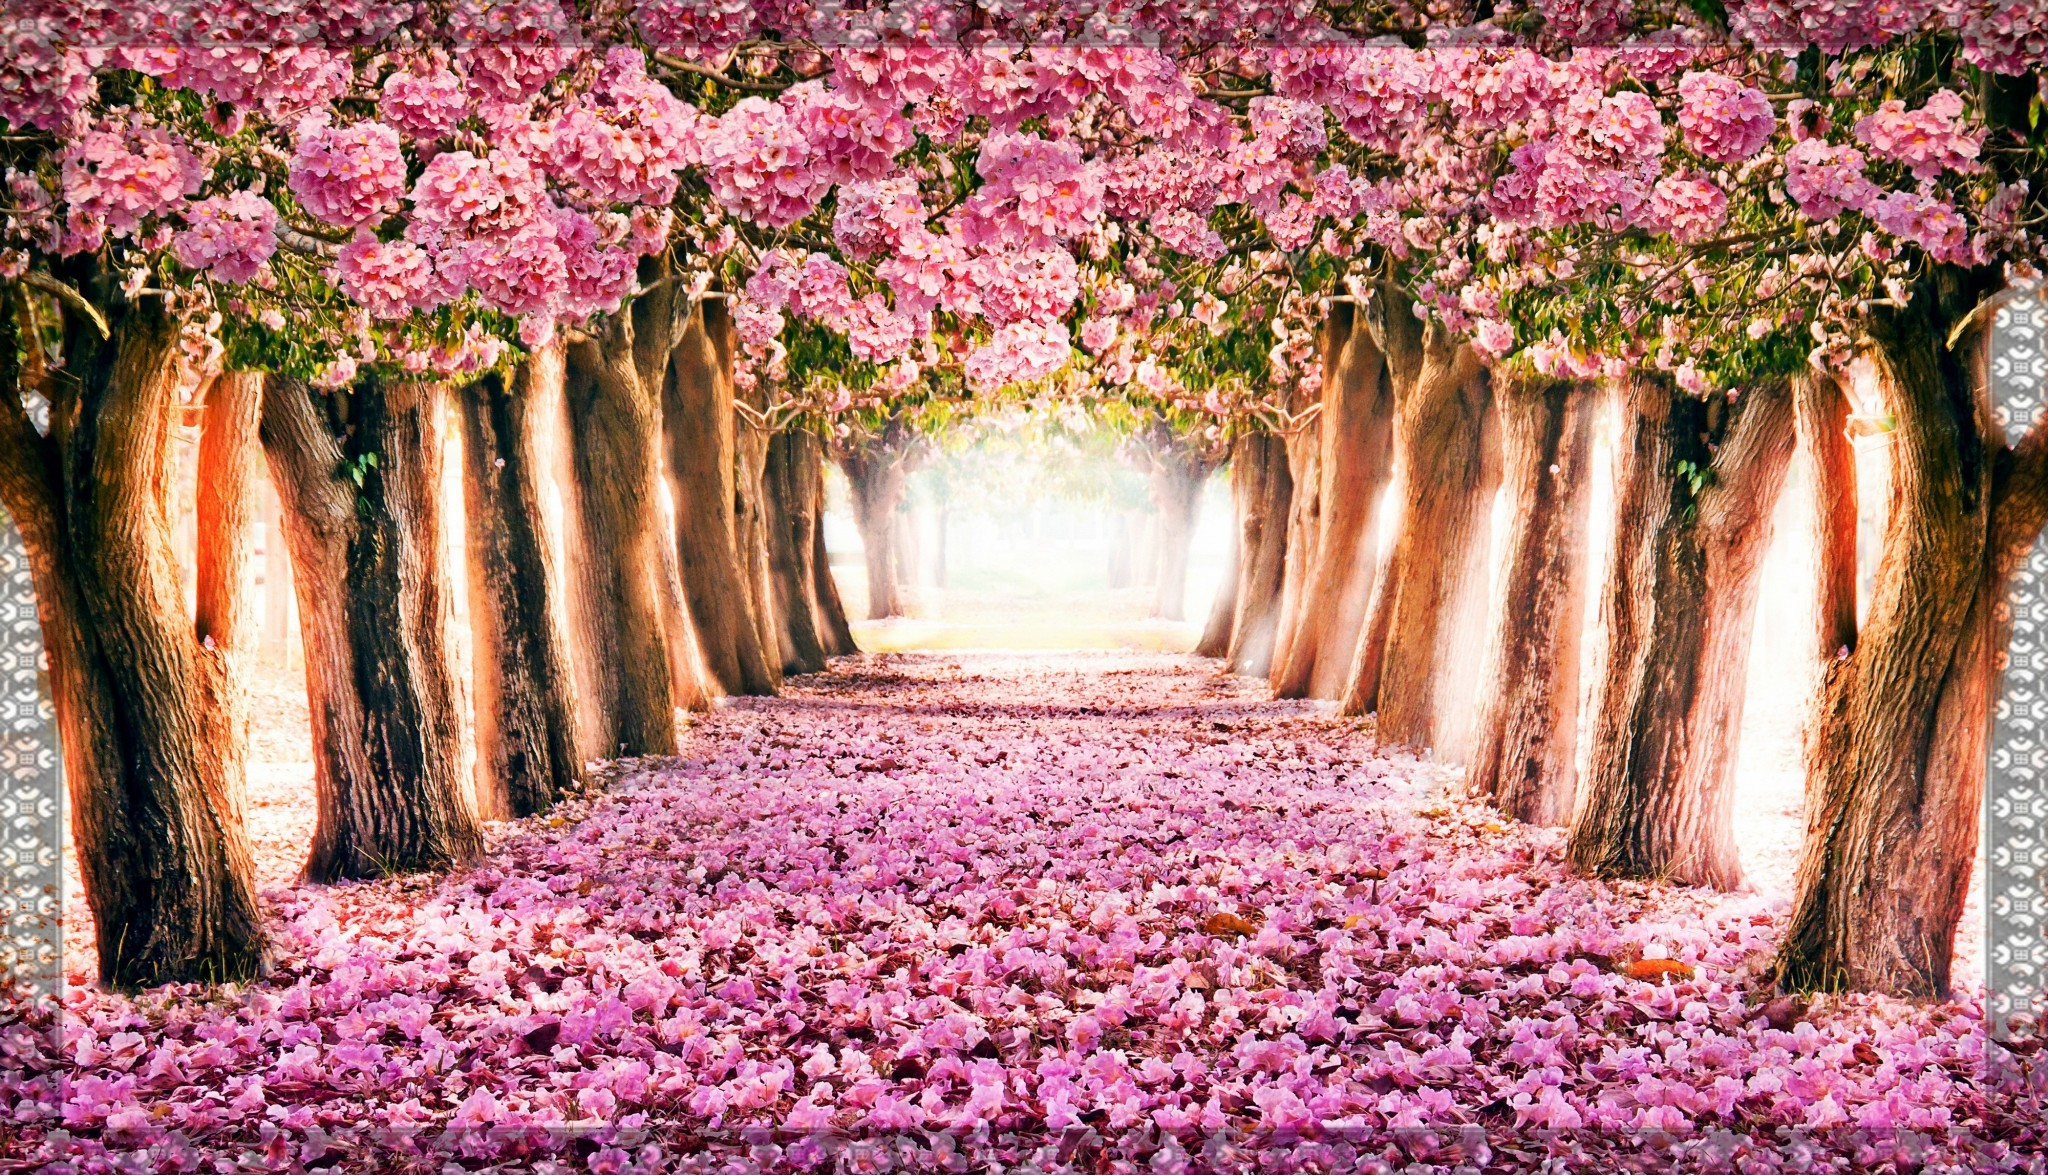 Spring wallpaper computer 64 images - Free computer backgrounds for spring ...